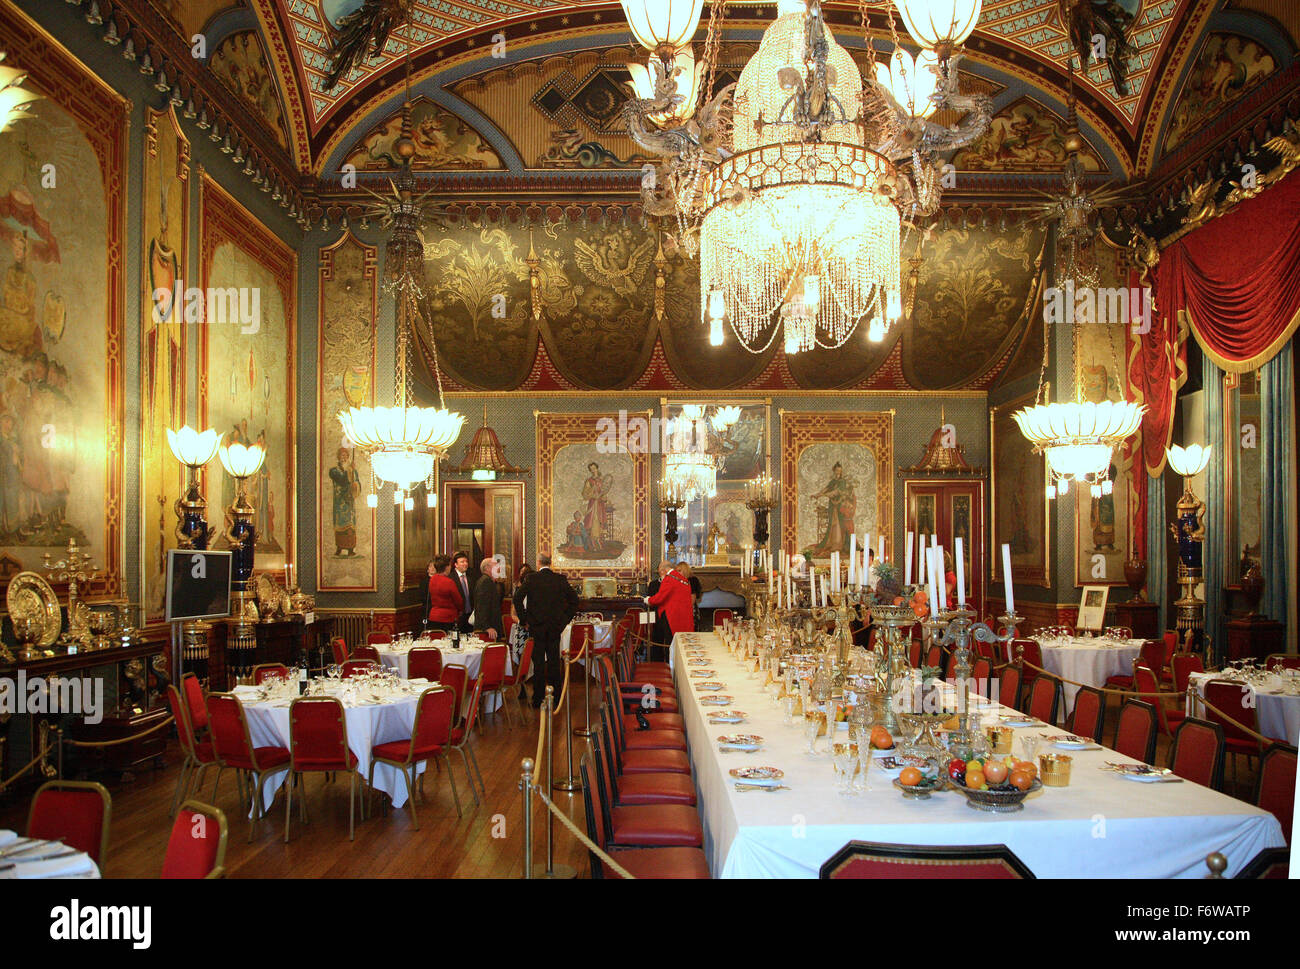 The Dining Room At The Royal Pavilion Building In Brighton